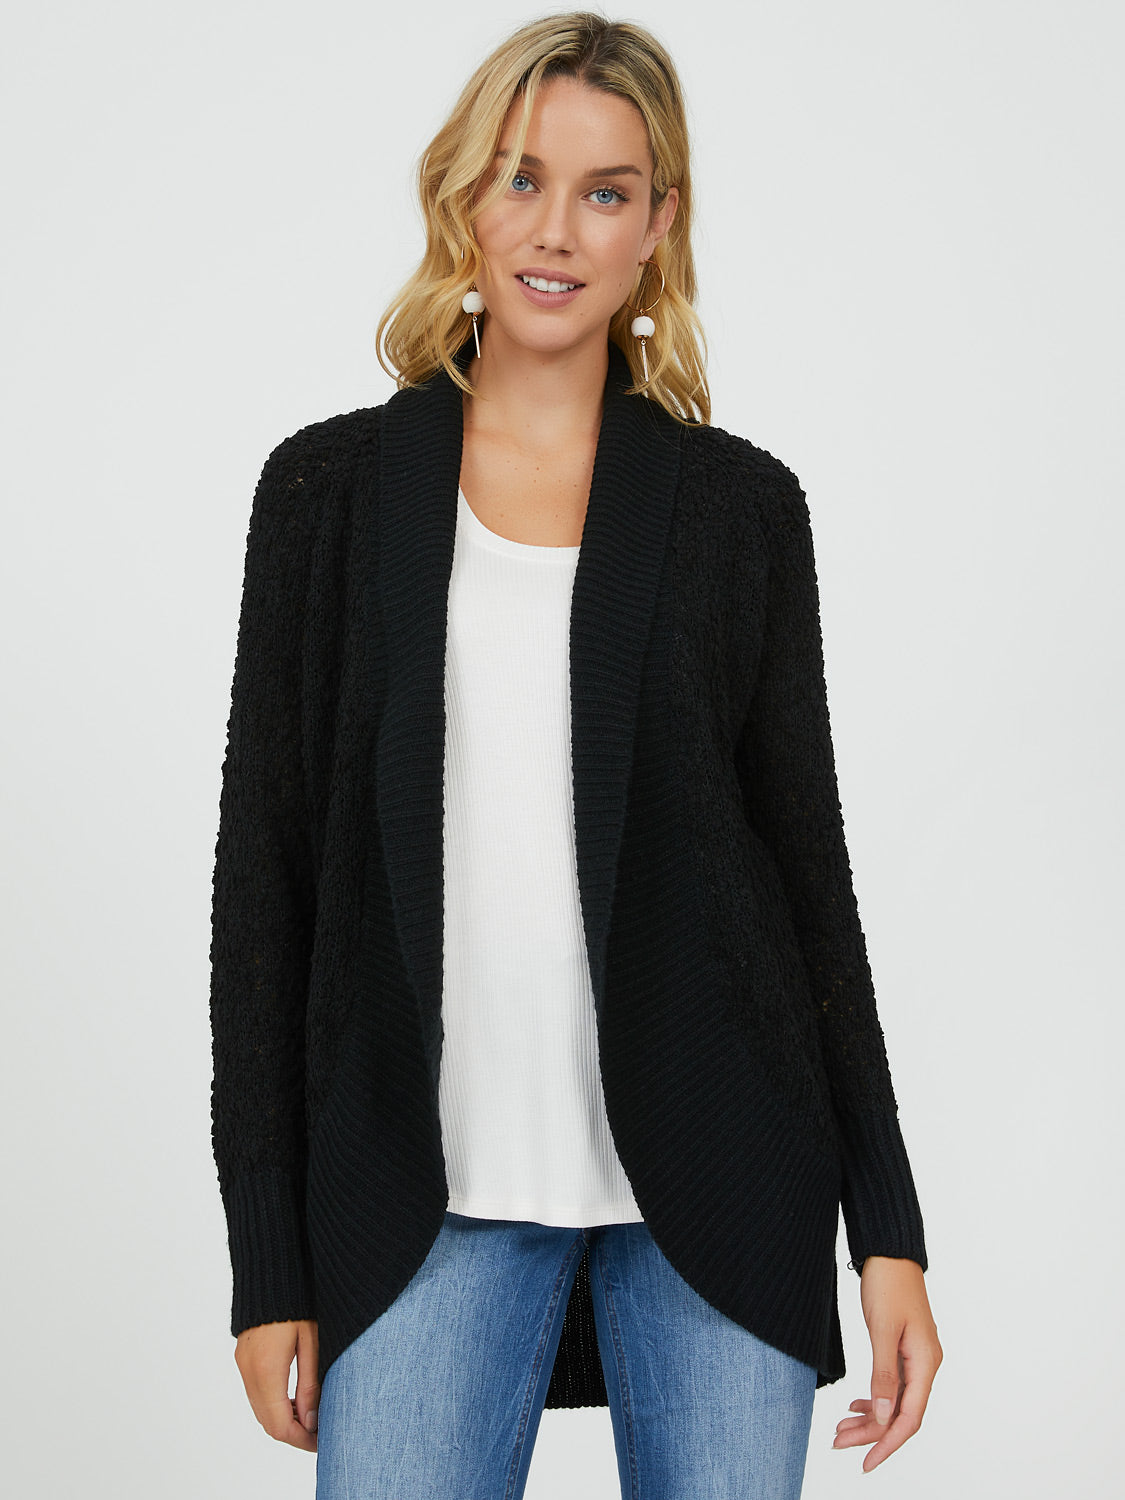 Enveloping Popcorn Sweater Duster